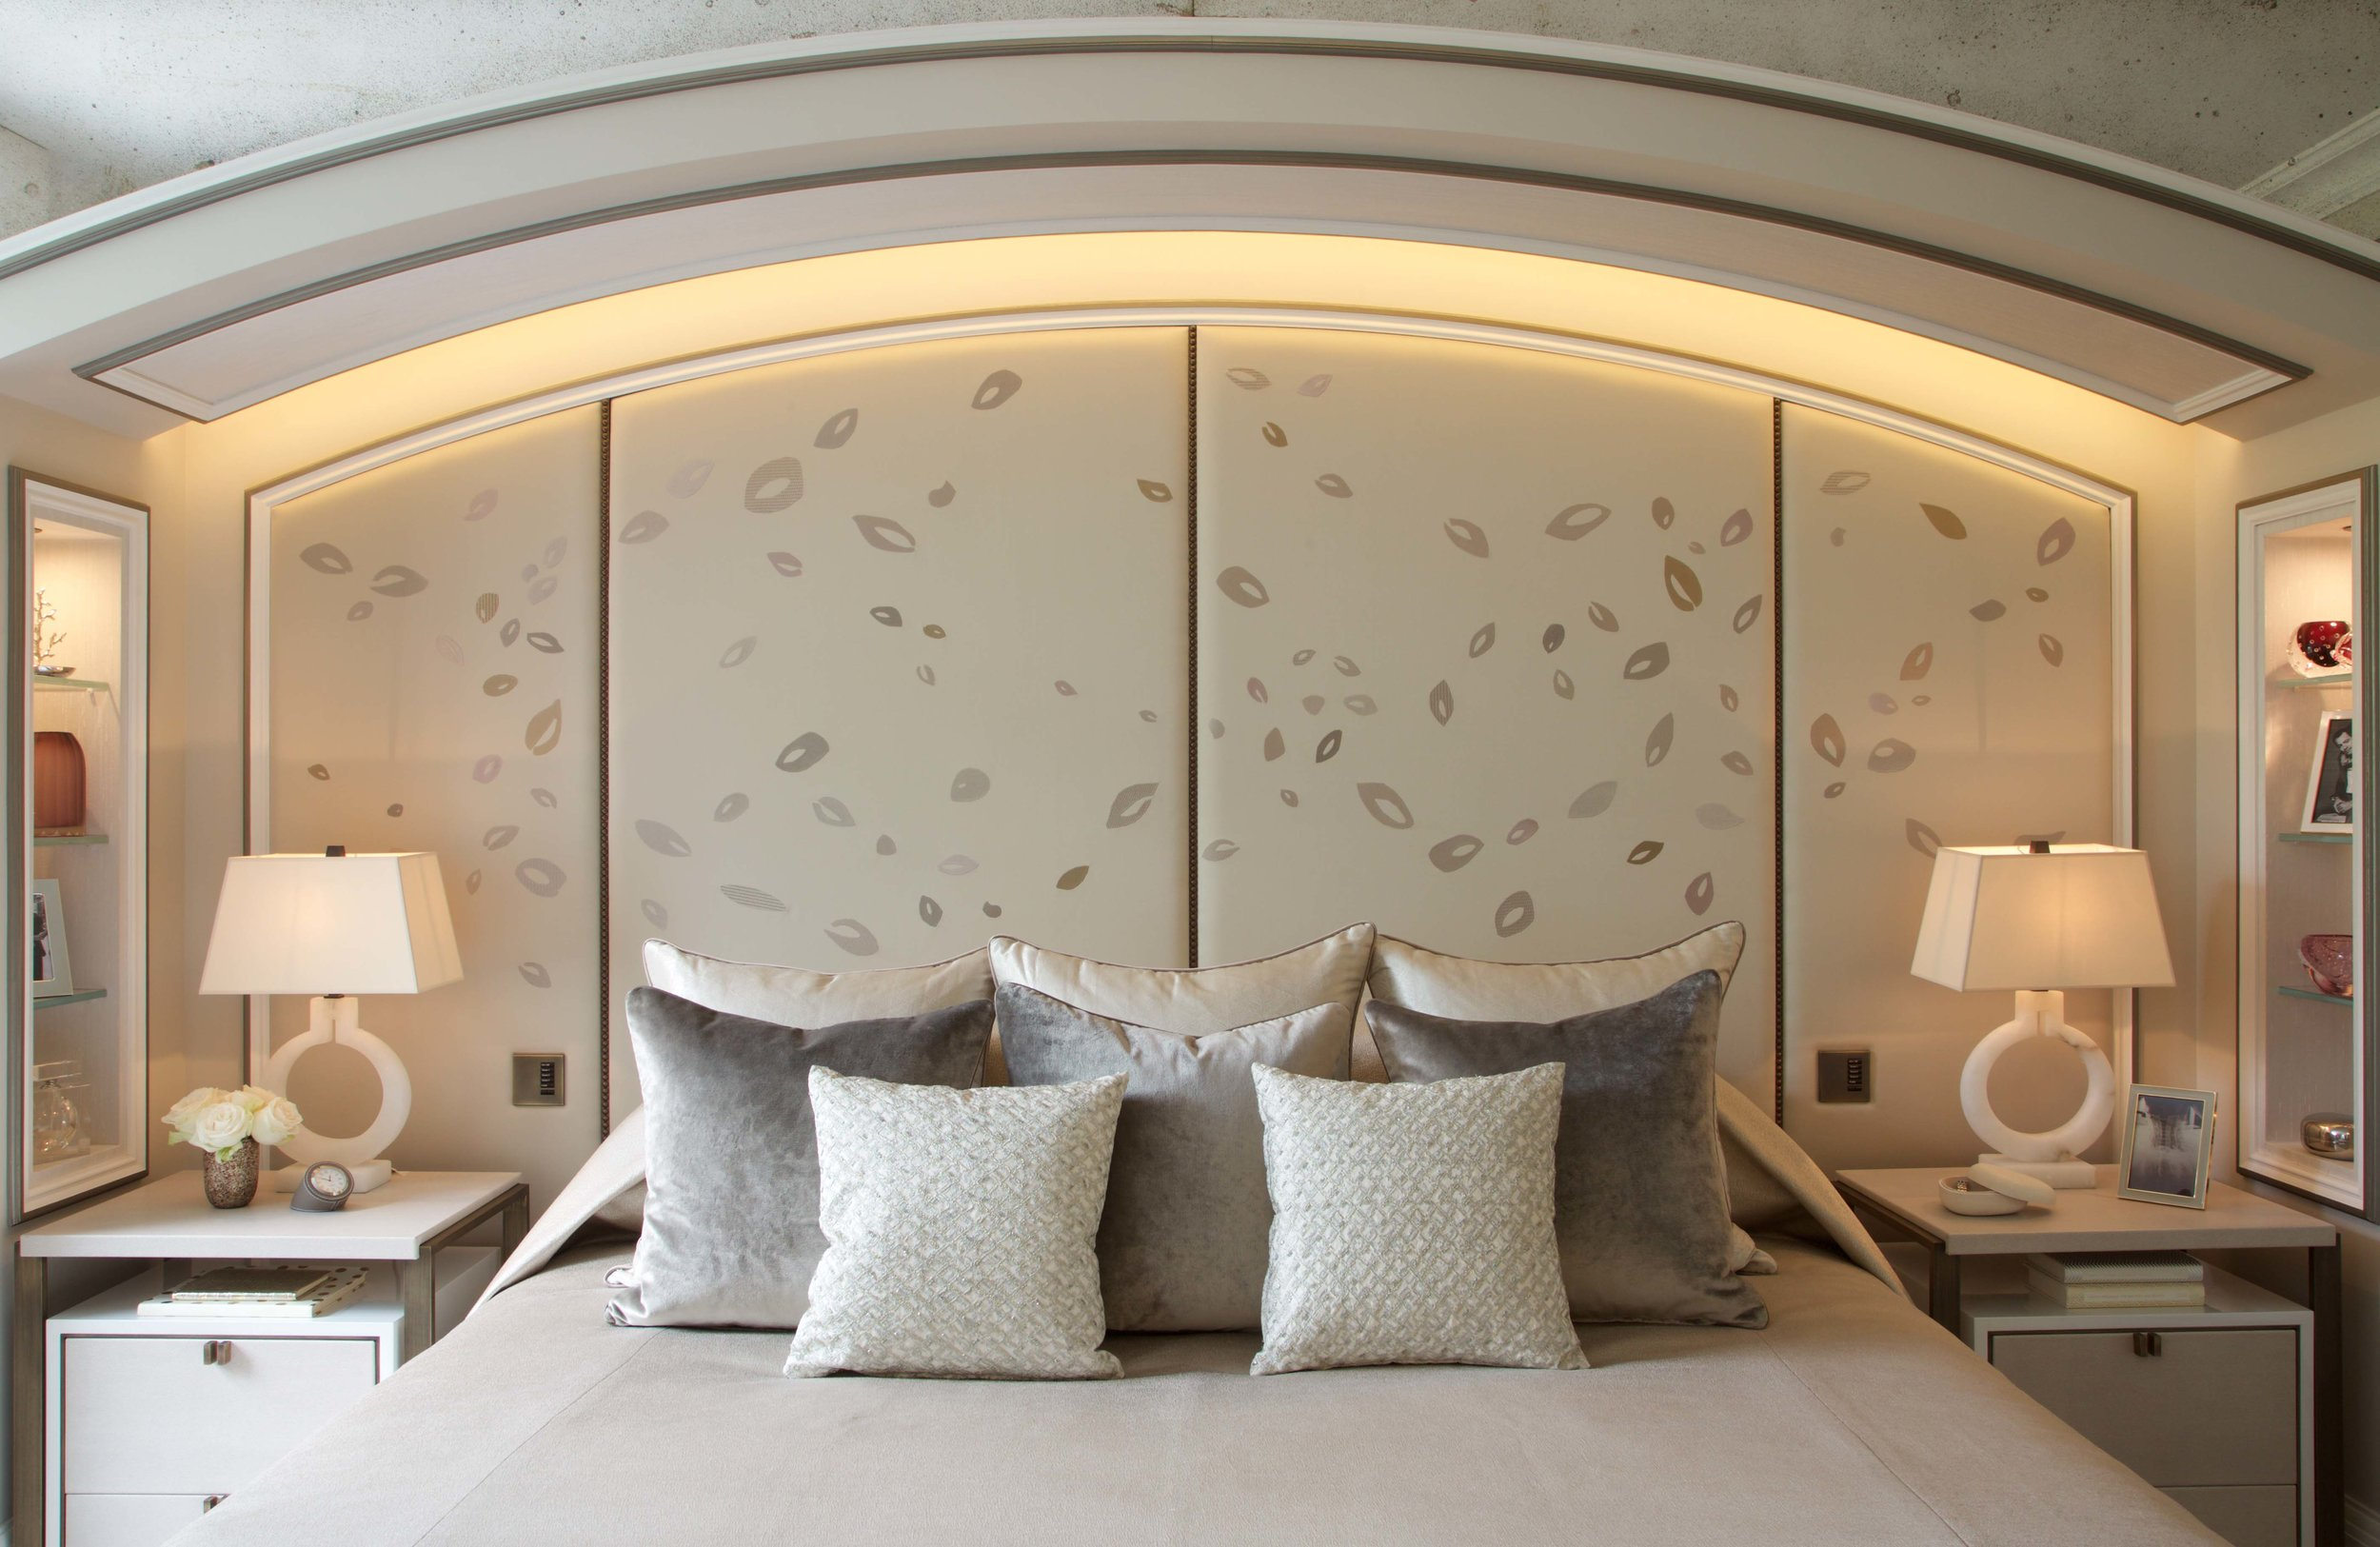 "Headboard created for  M Design London for a spectacular house in the heart of Belgravia. ""This one-of-a-kind headboard was created exclusively by the immensely talented @zara_day_Rosemaryrose who embroidered a delicate leaf design onto silk panels."